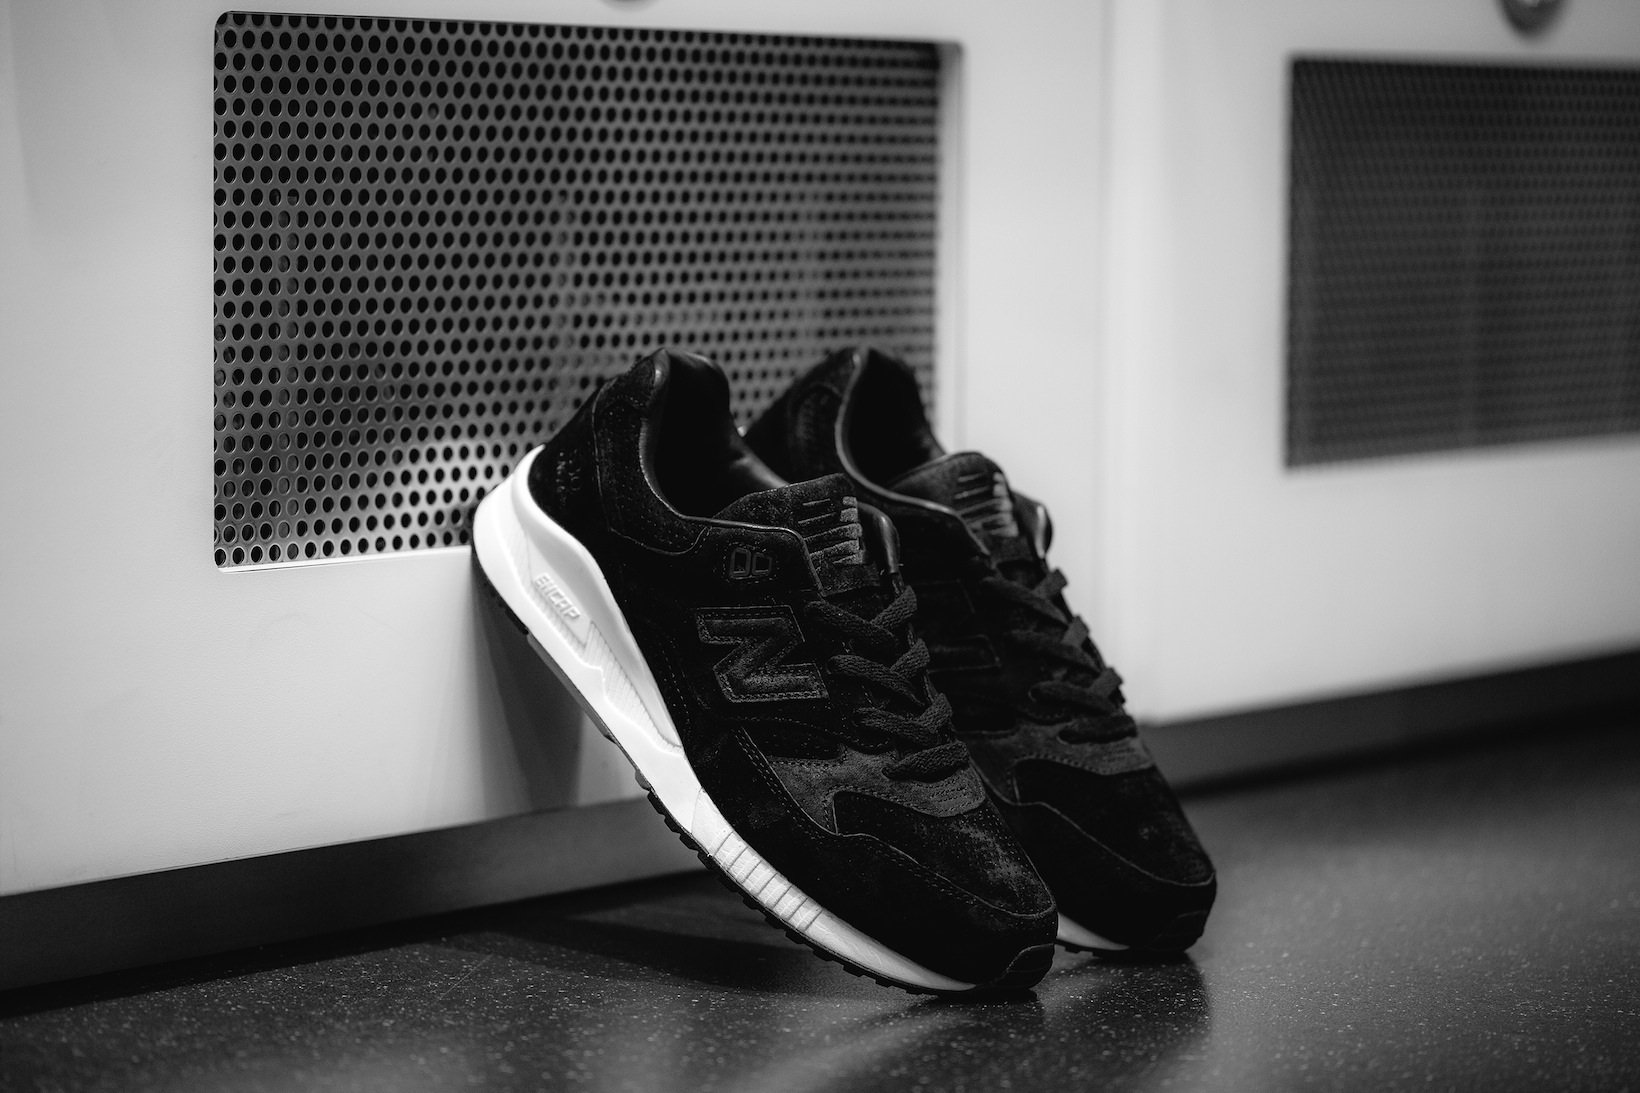 http://shoesbrend.ru/images/upload/new-balance-530.jpg